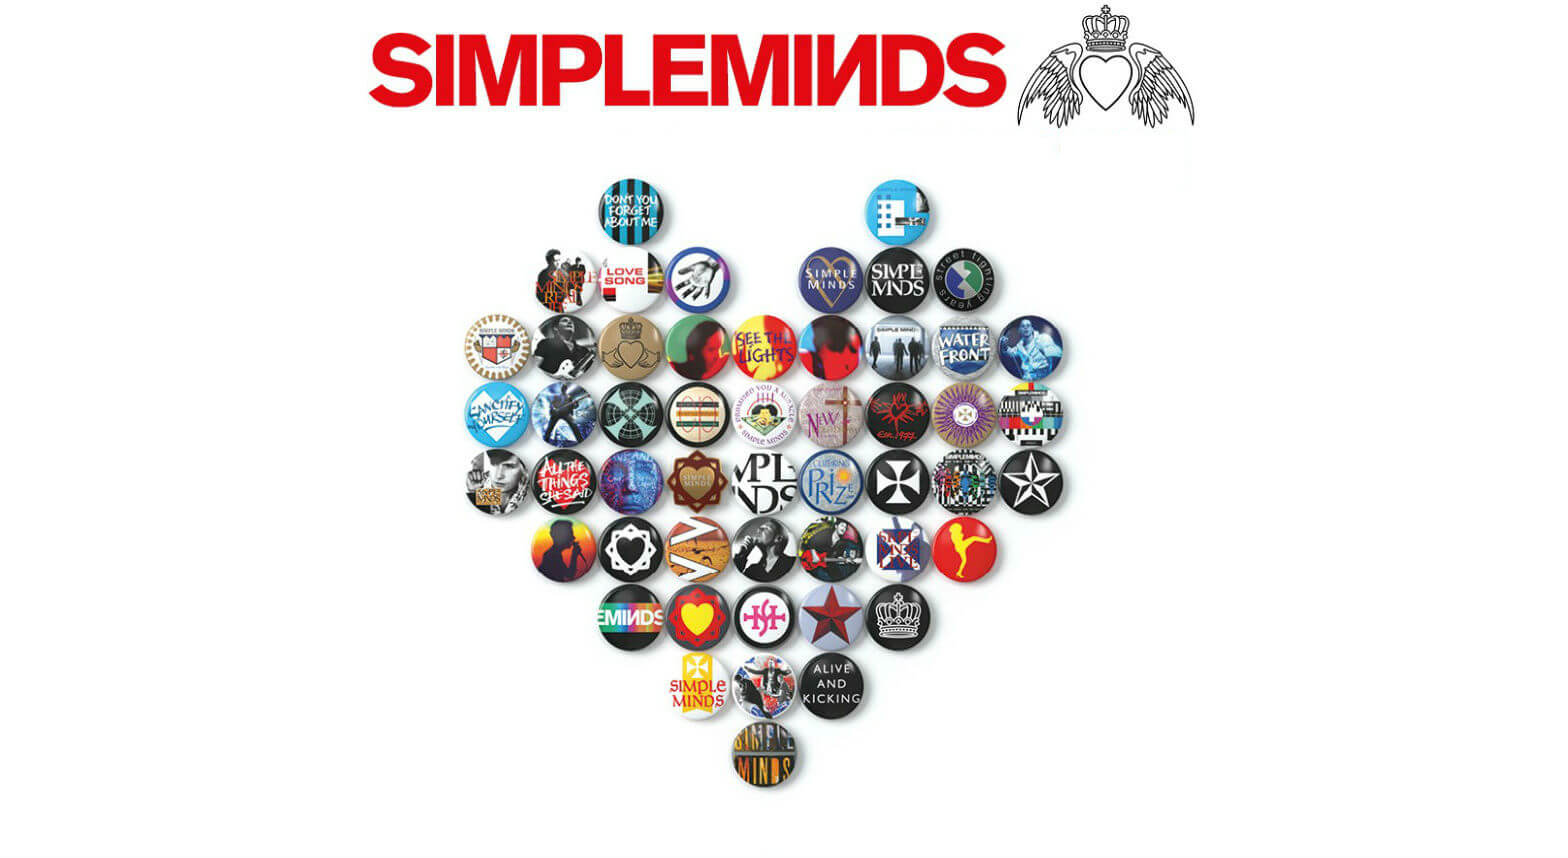 simple-minds-2-arenas.jpg